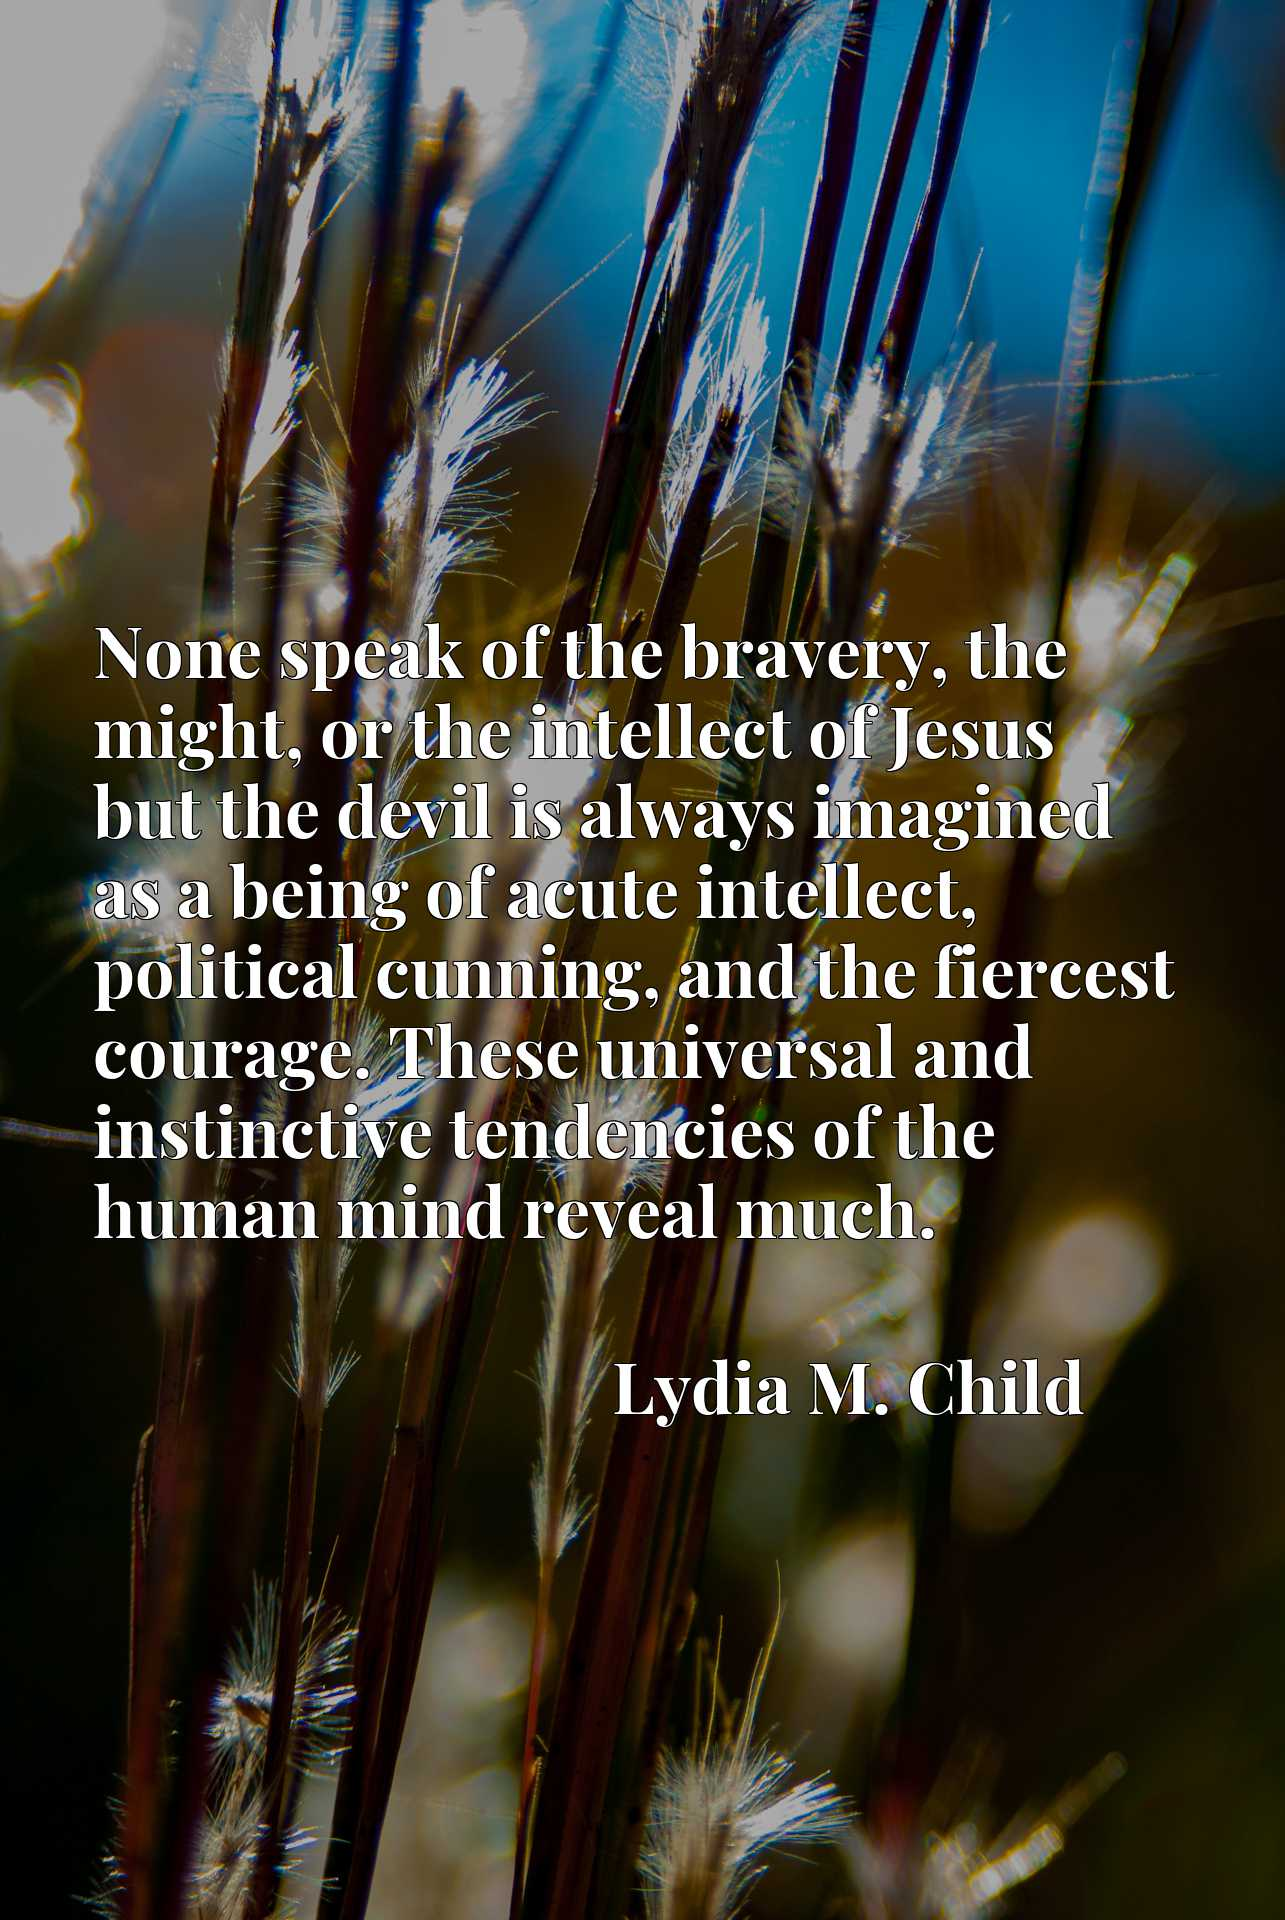 None speak of the bravery, the might, or the intellect of Jesus but the devil is always imagined as a being of acute intellect, political cunning, and the fiercest courage. These universal and instinctive tendencies of the human mind reveal much.